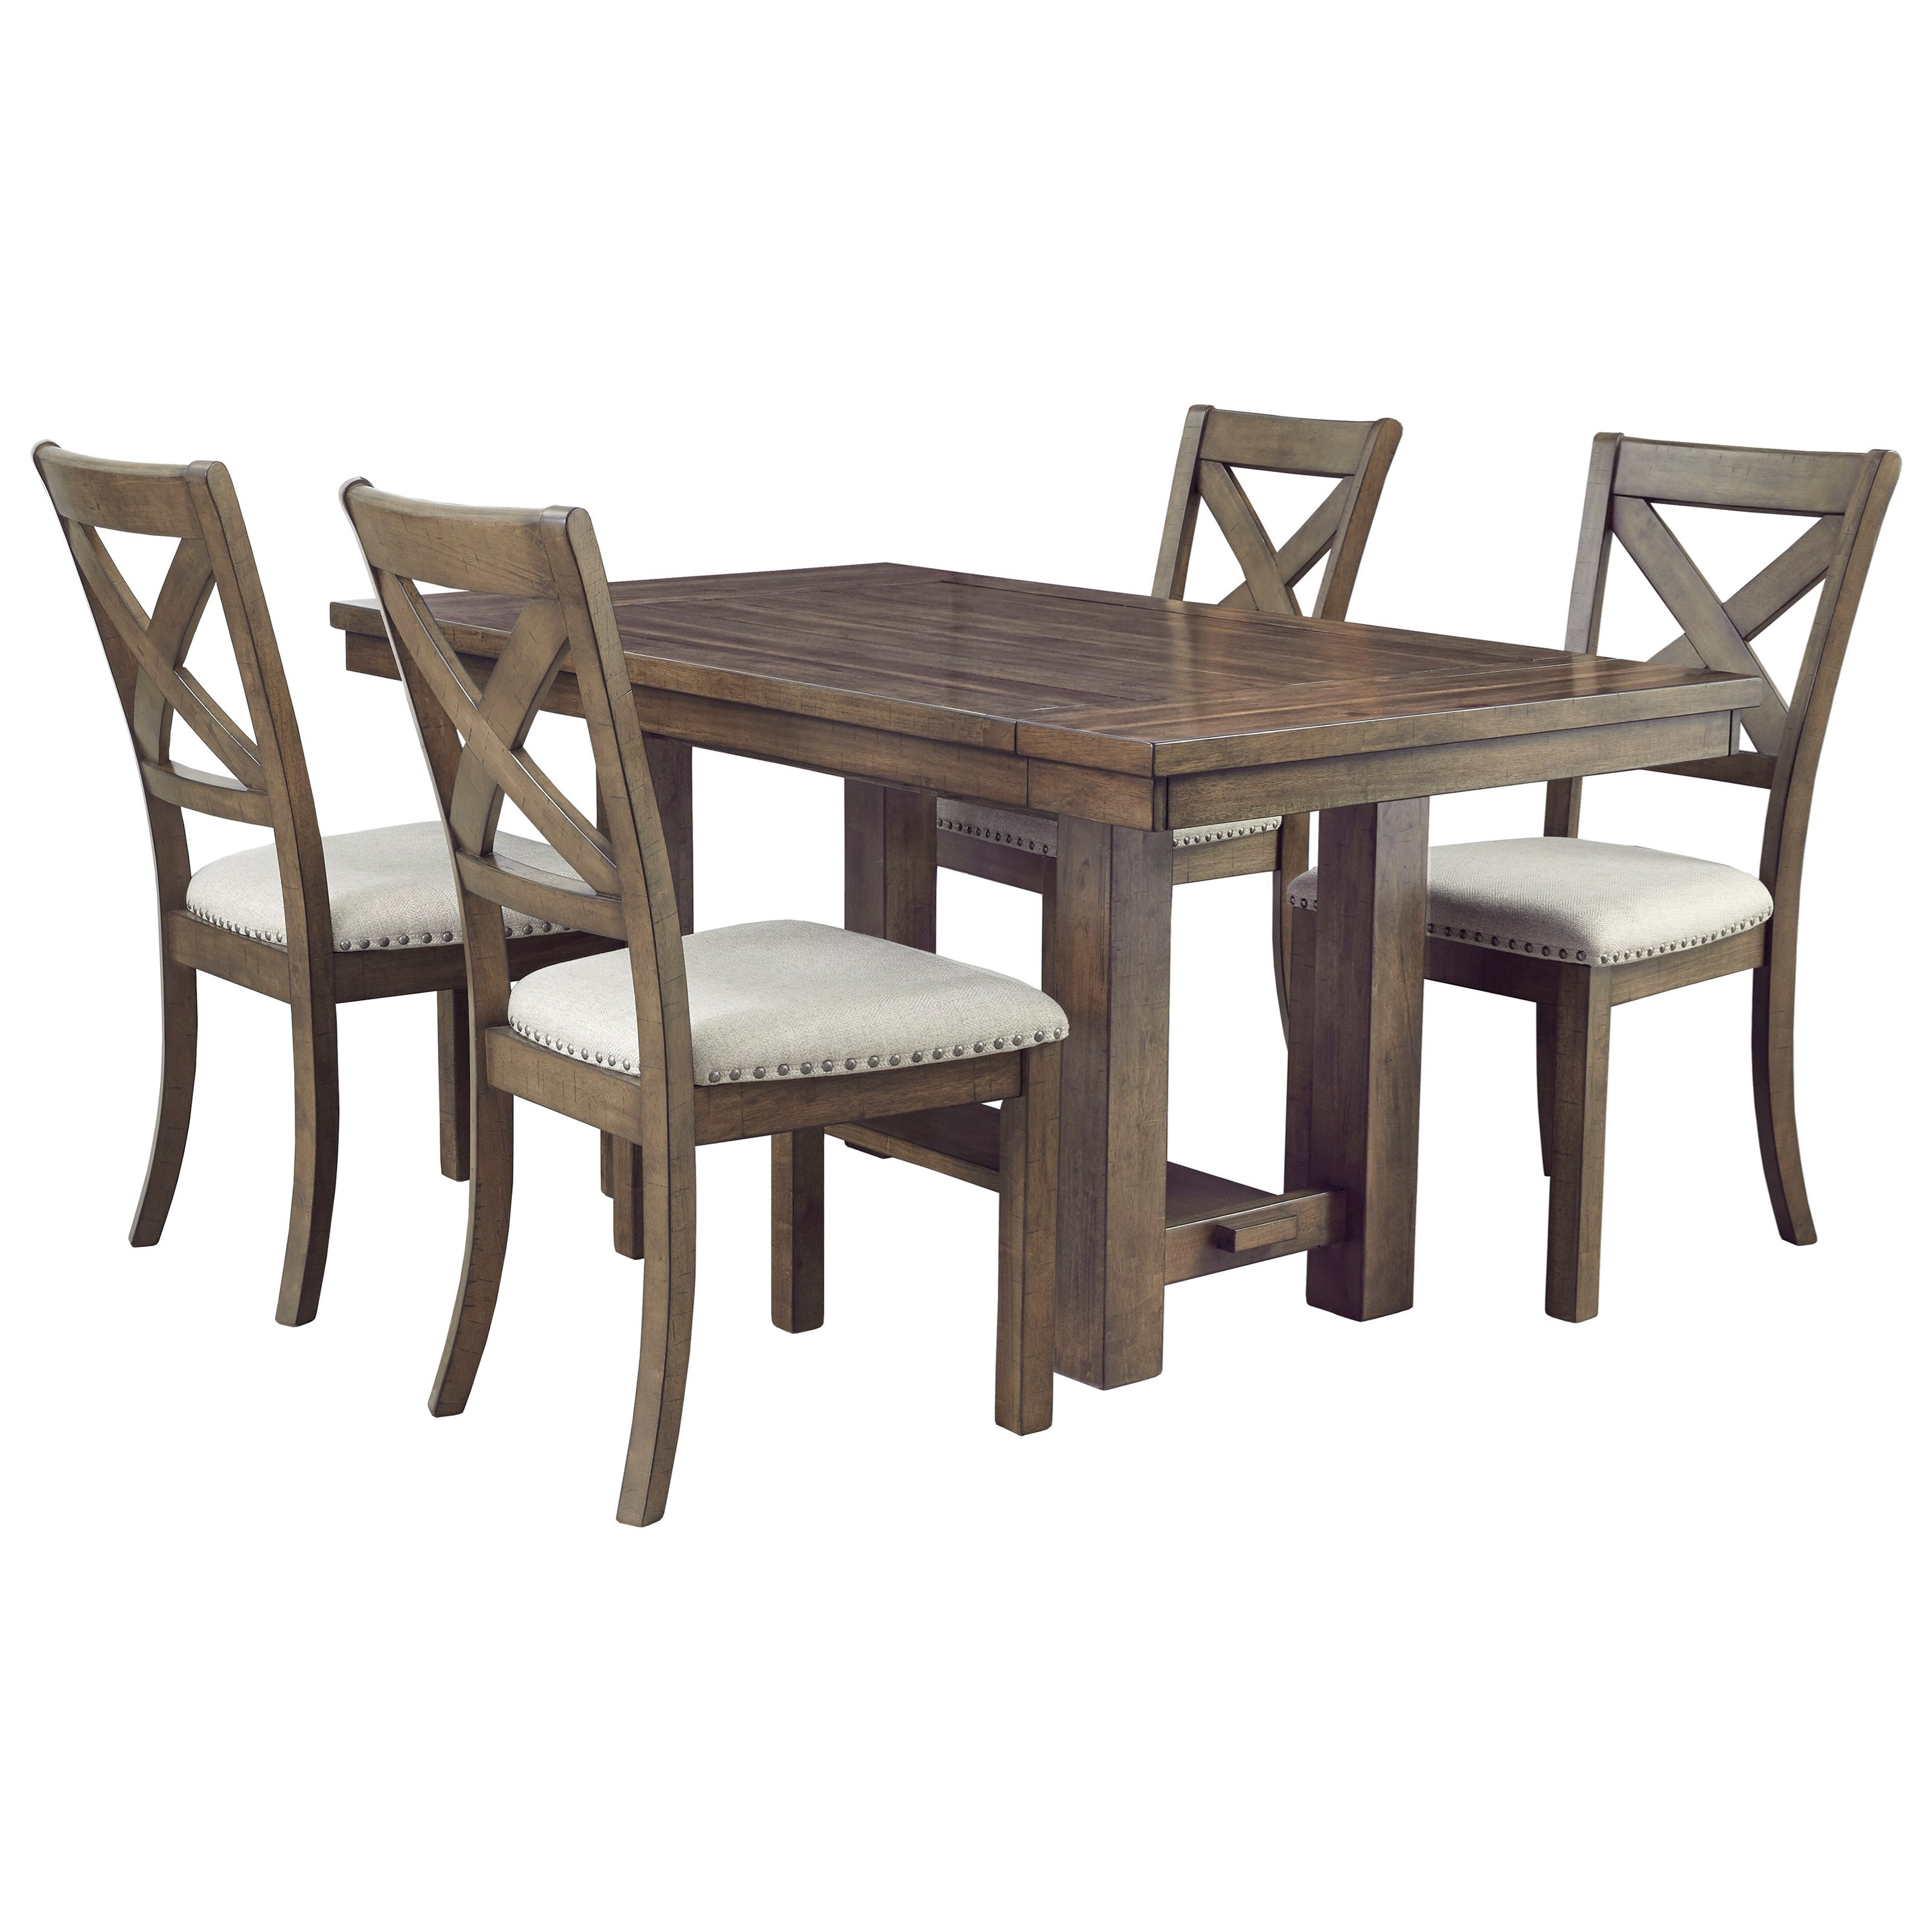 Moriville 5-Piece Table and Chair Set by Signature Design by Ashley at Beck's Furniture